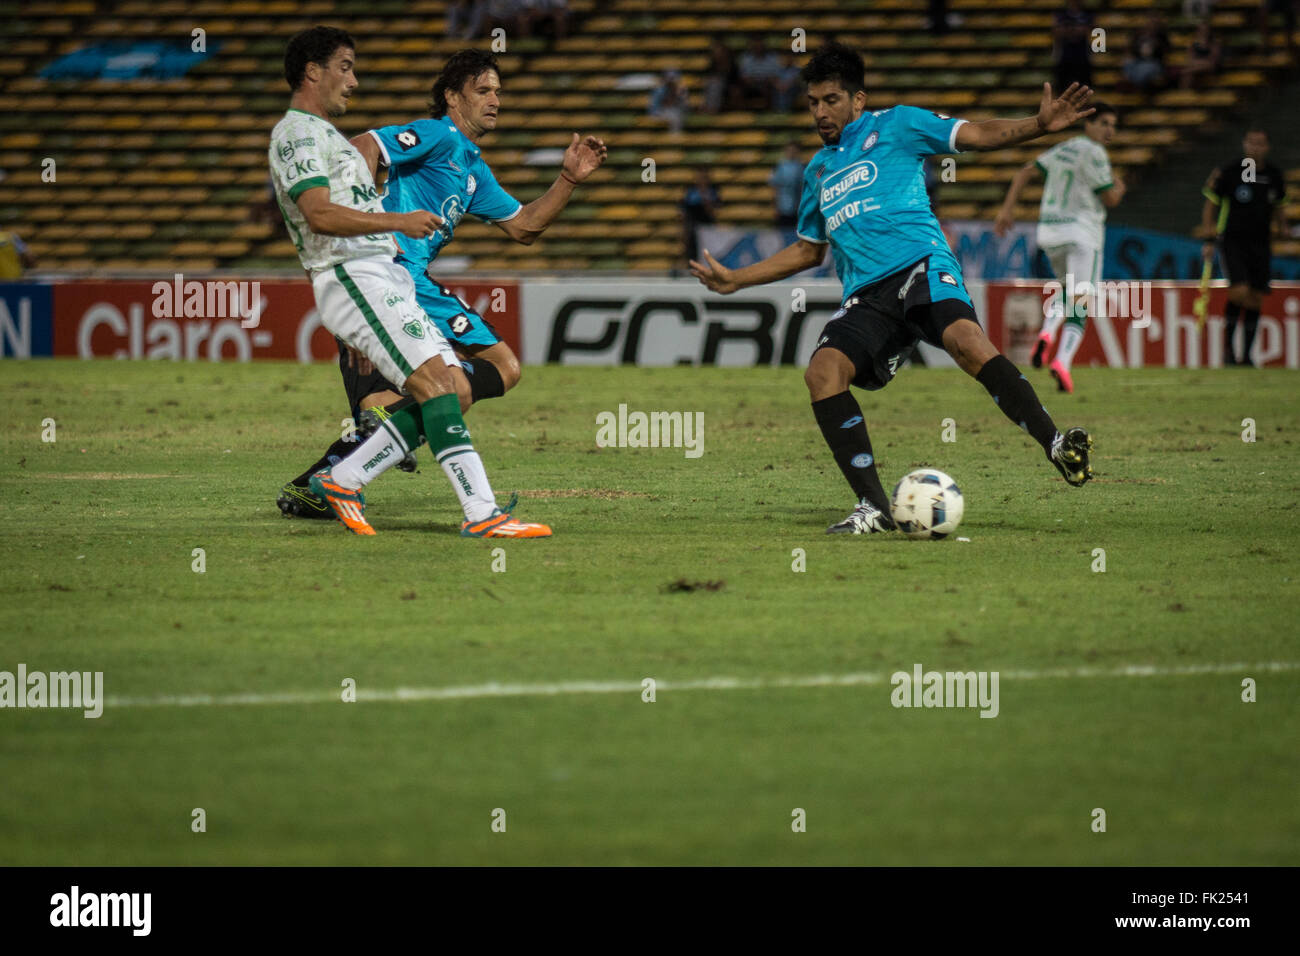 Cordoba, Argentina. 5th March, 2016. Belgrano Soccer Team, during a match between Belgrano and Sarmiento as part - Stock Image